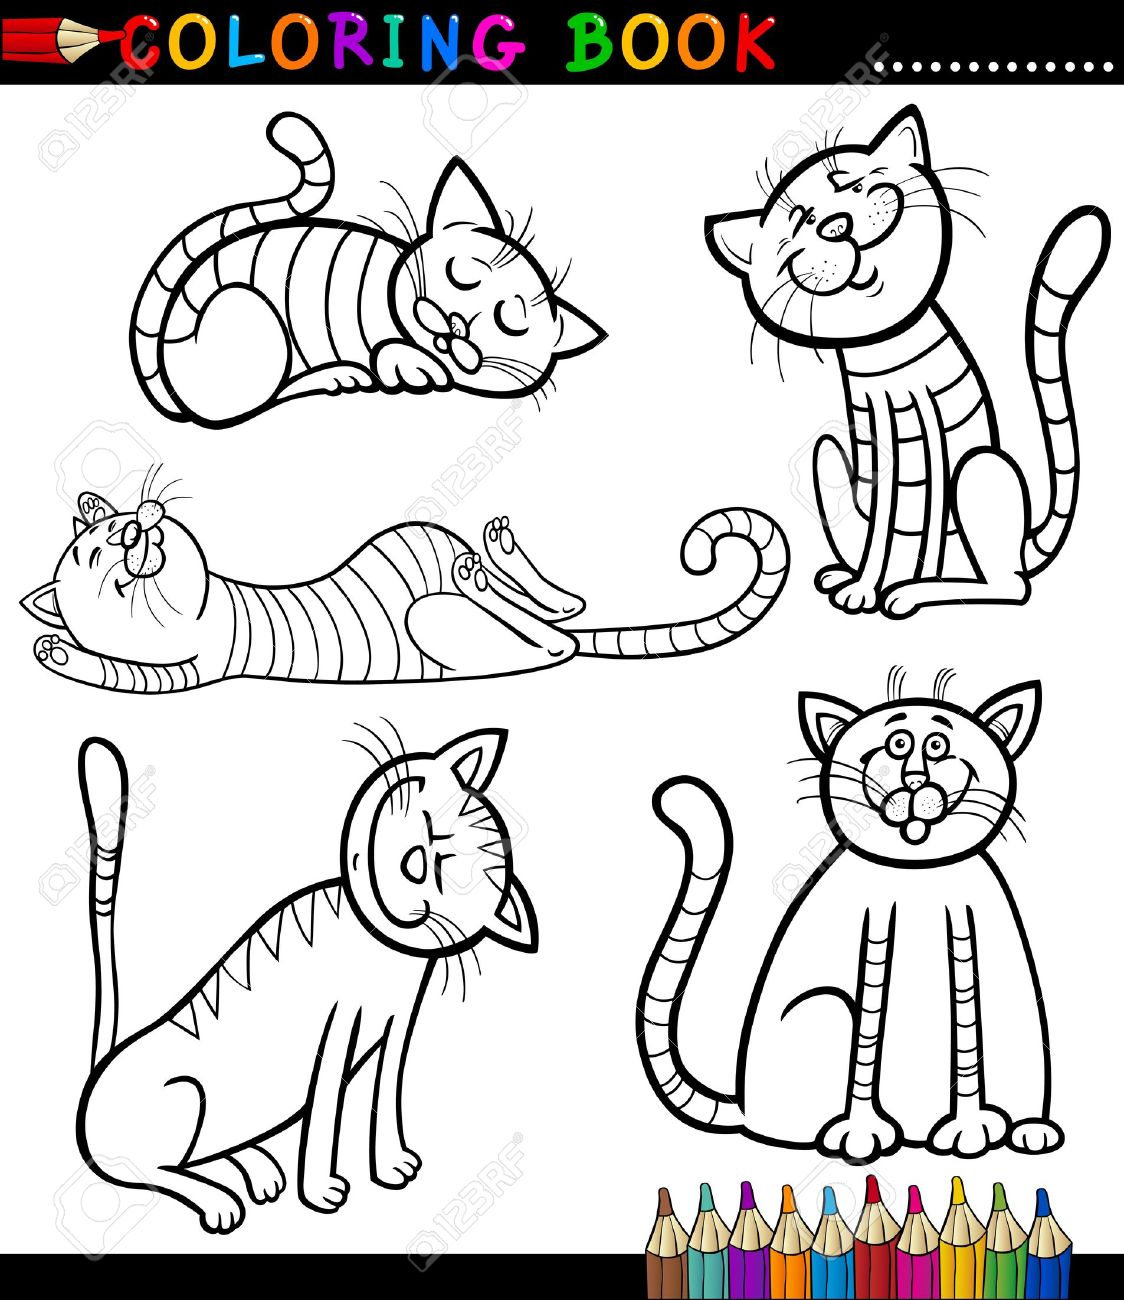 Coloring Book or Page Cartoon Illustration of Funny Cats or Kittens for Children Stock Vector - 16492384